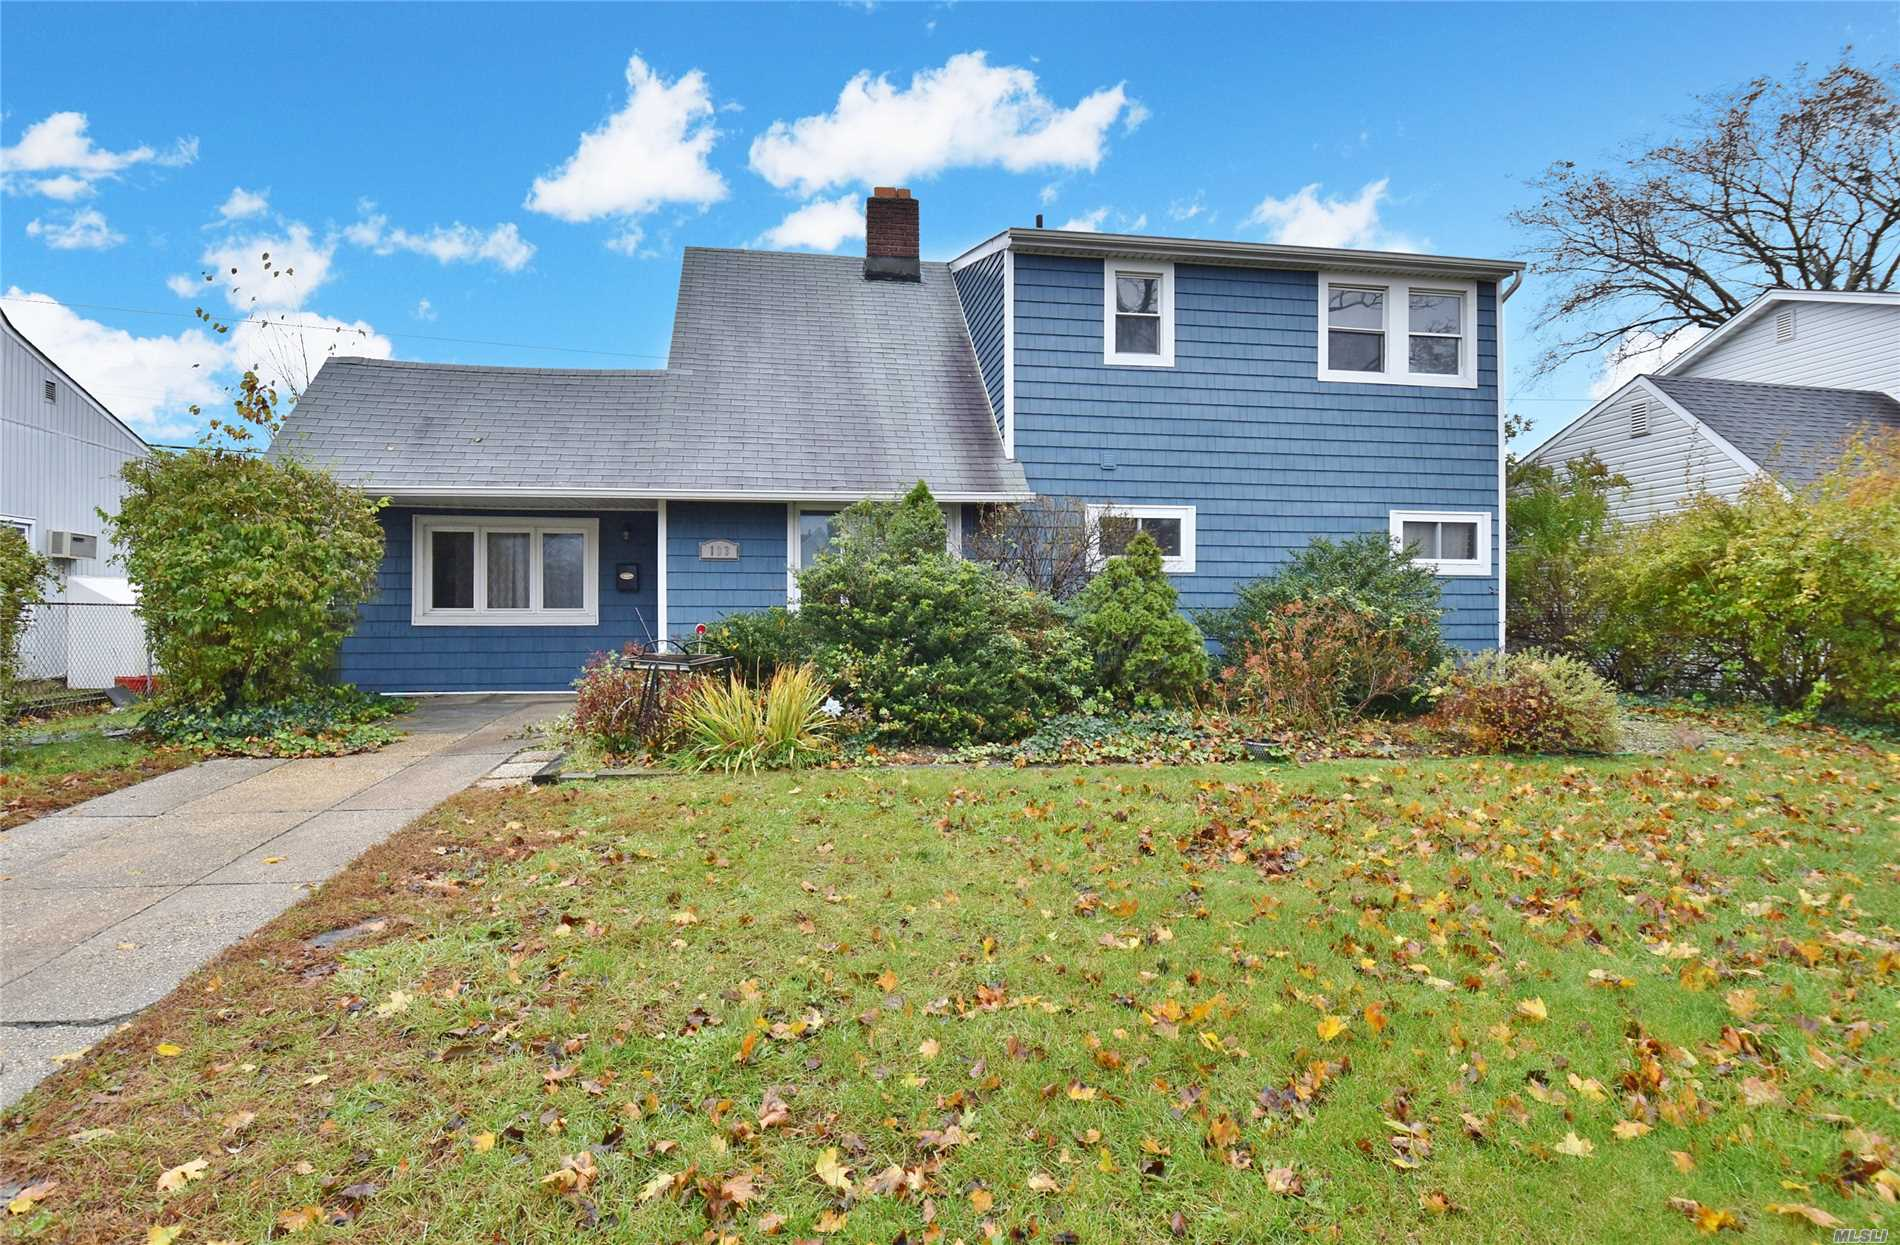 Spacious And Well Maintained 5 Bedroom 2 Bathroom Expanded Cape. Eat In Kitchen, Formal Dining Room, Living Room/ Family Room. Close To Shopping And Parkways! Low Taxes! Won't Last!